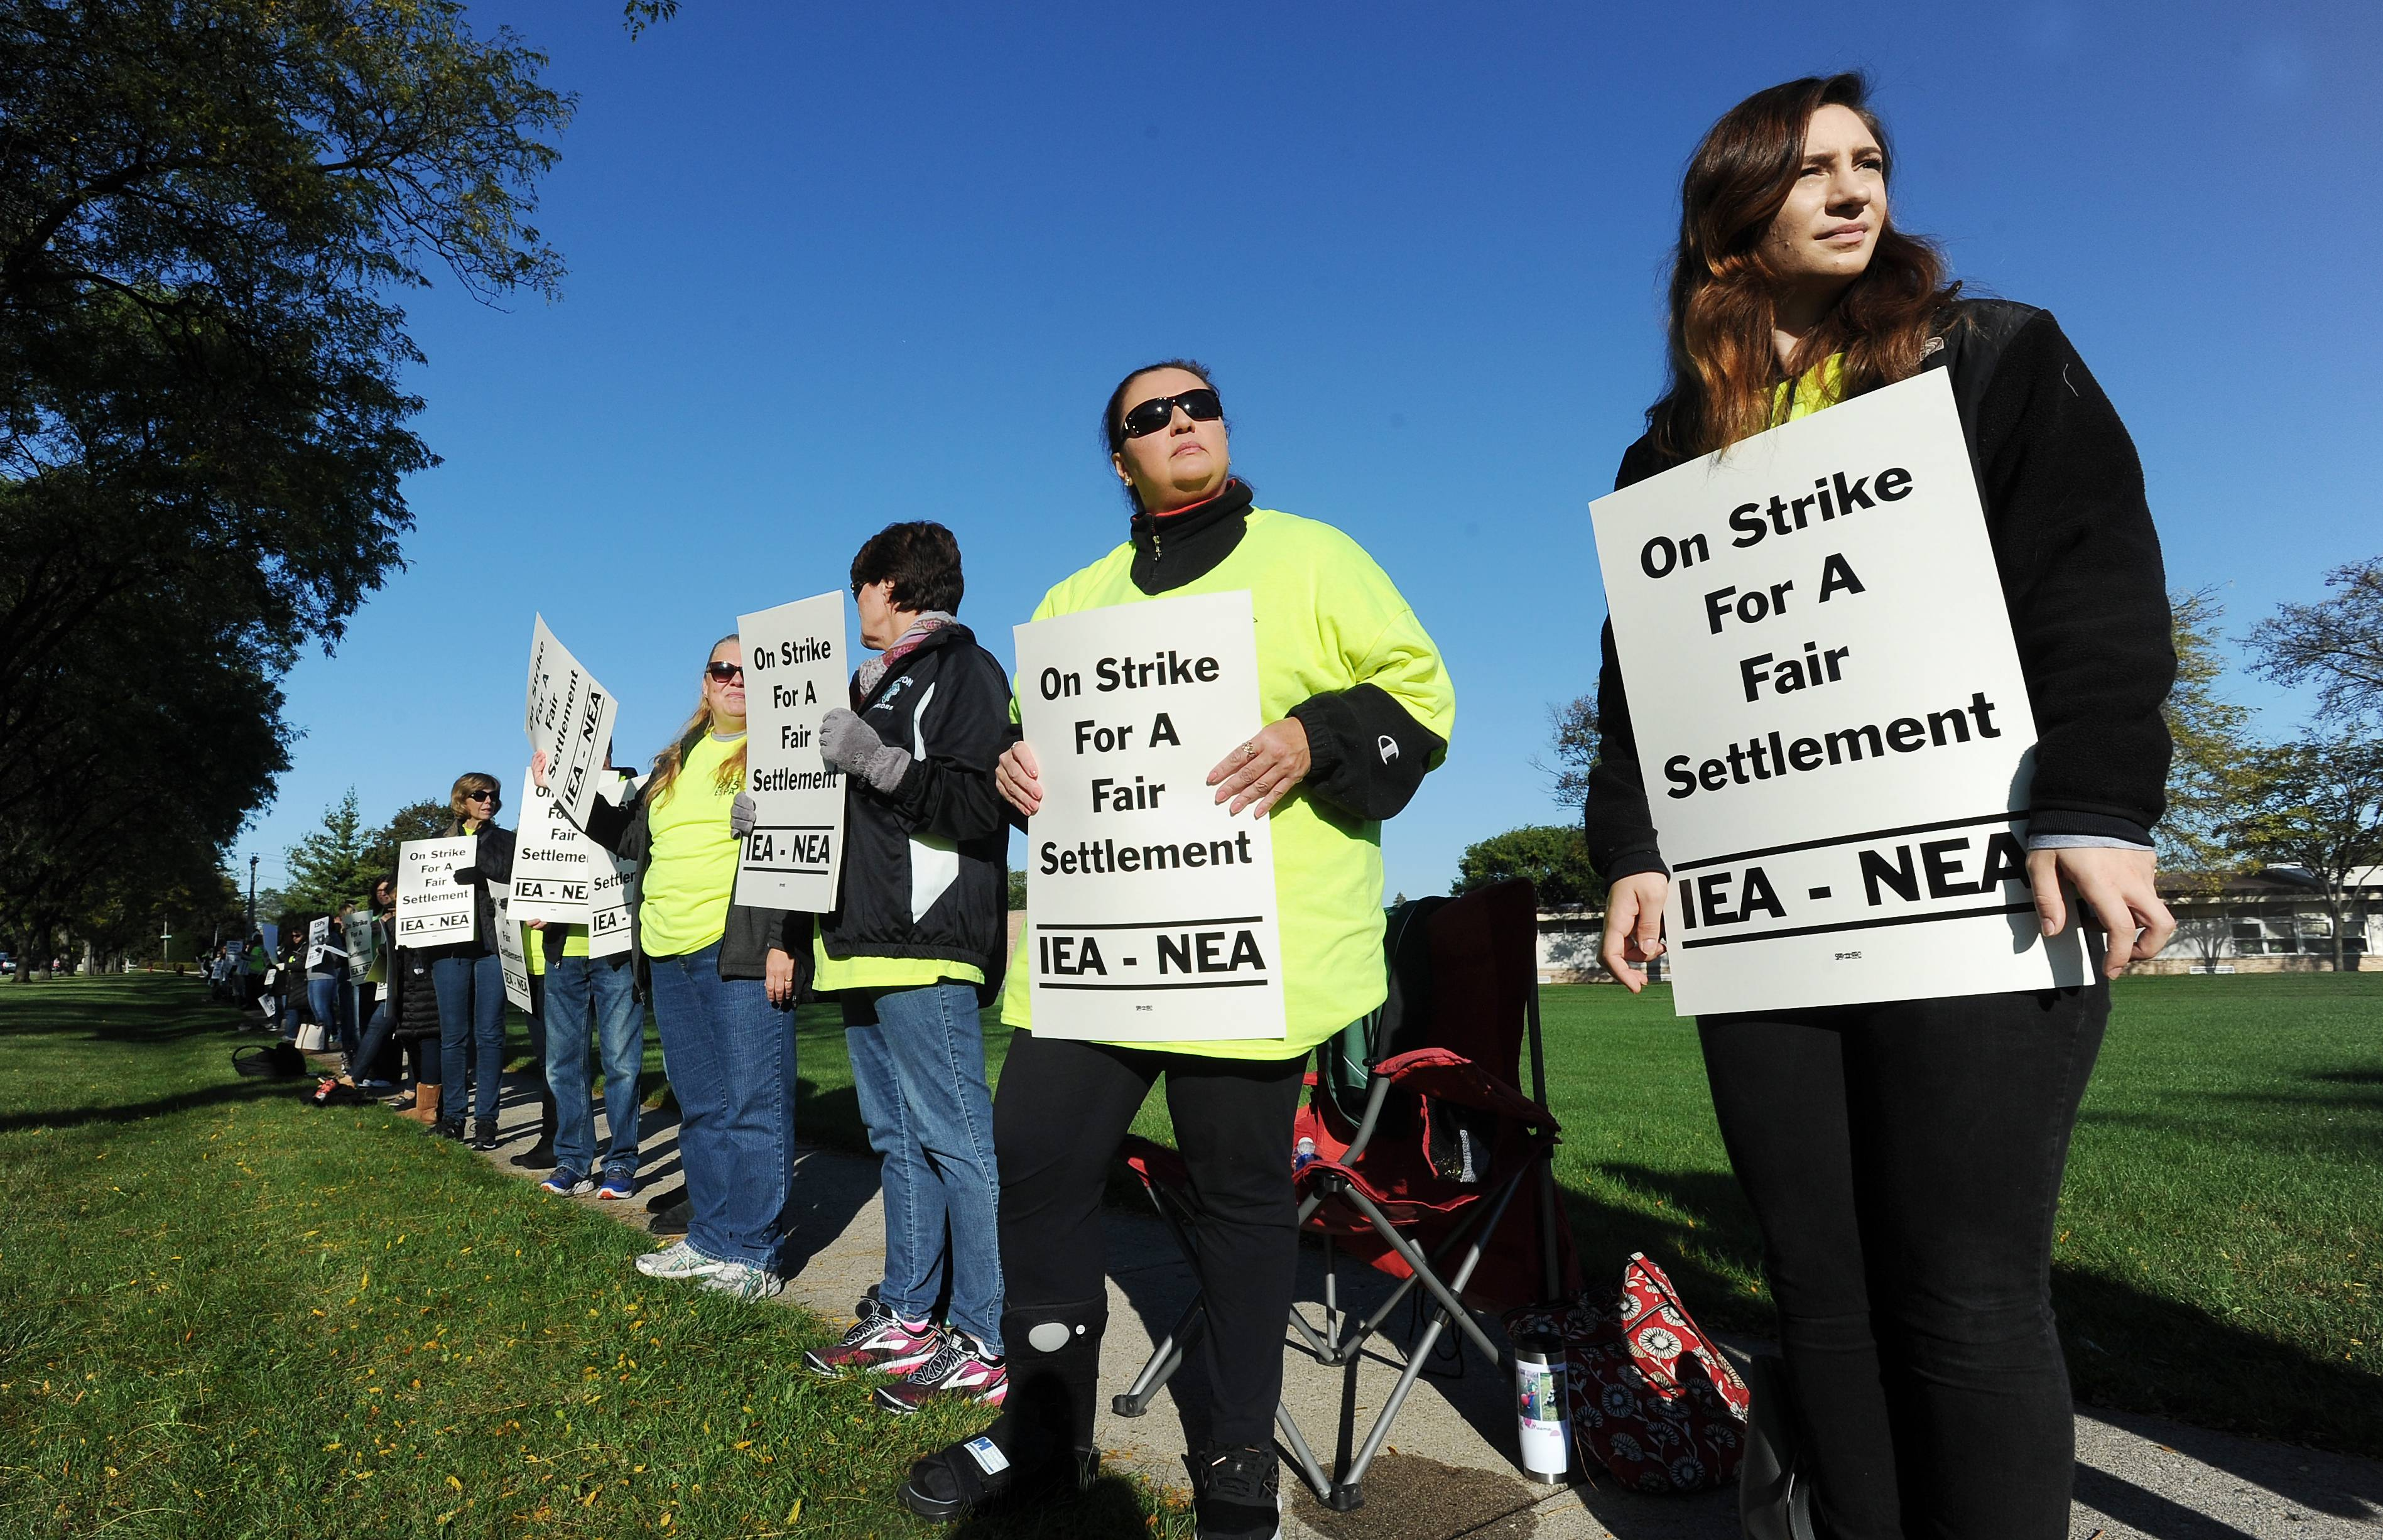 District 15, support workers have tentative deal